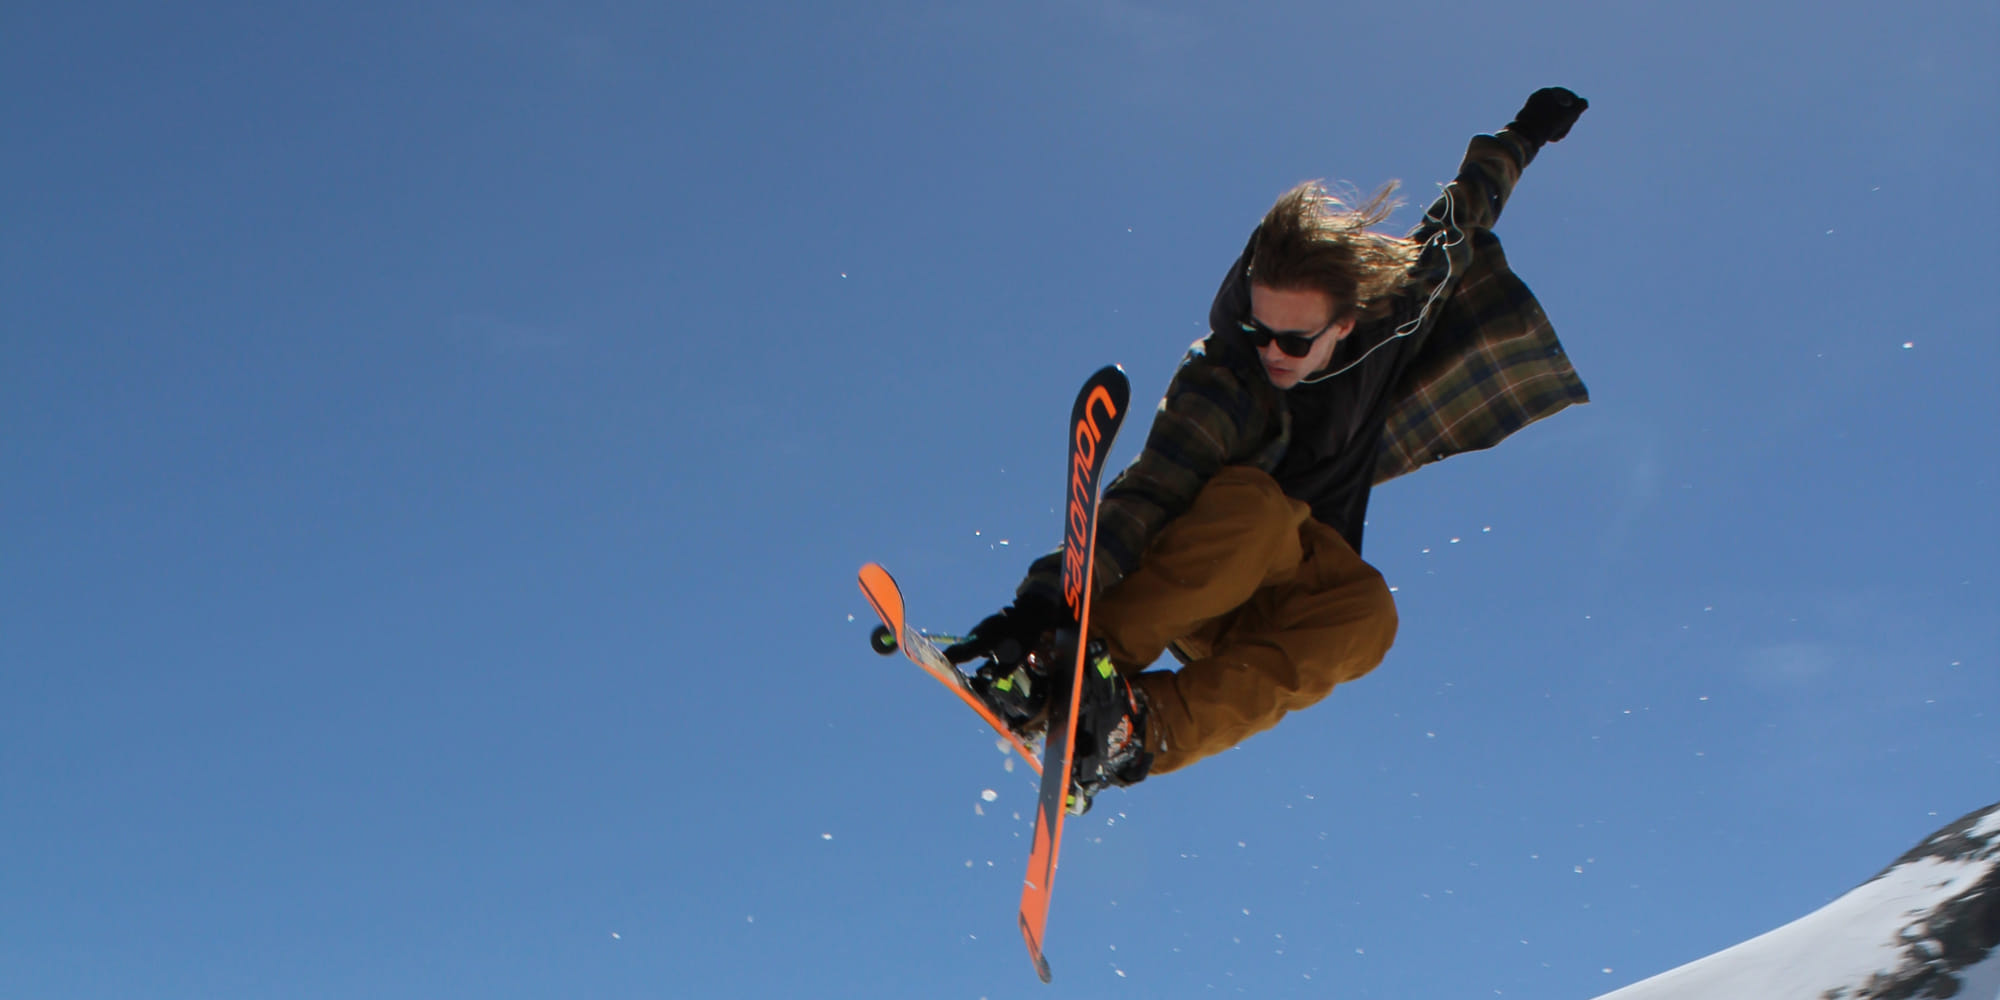 Sommerski in Saas-Fee Snow Park Snowboard Freestyle